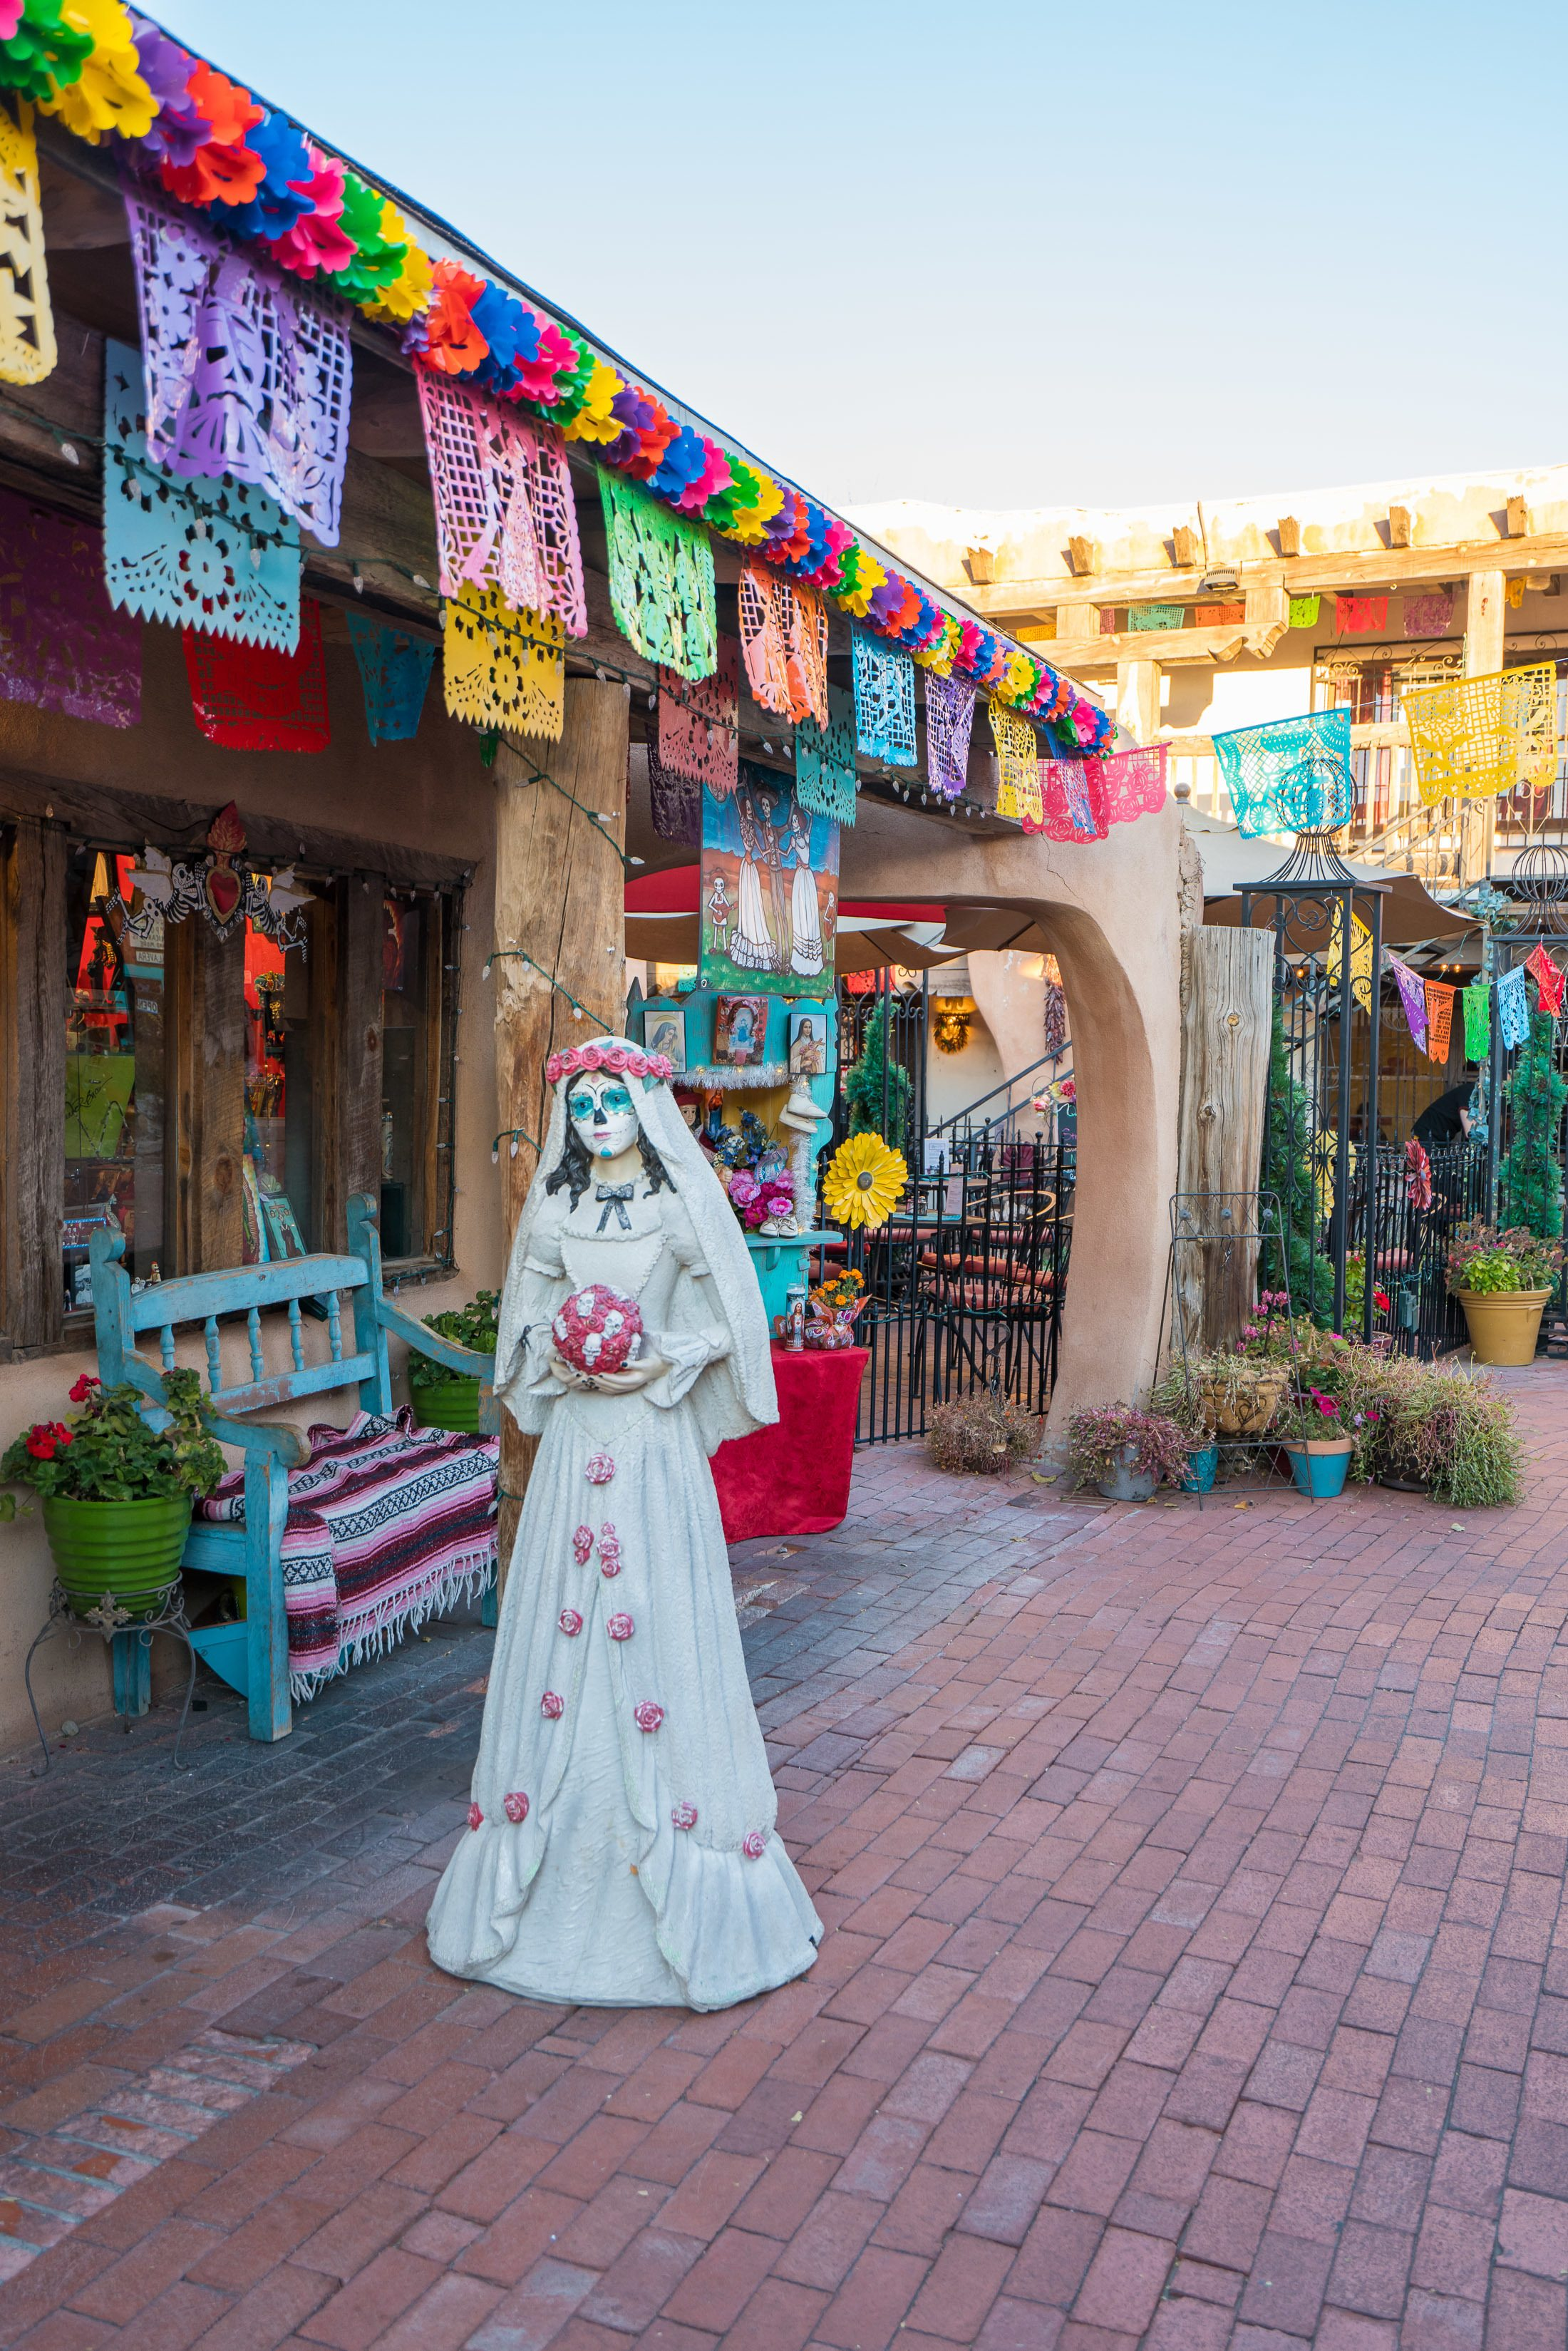 One of the best things to do in Albuquerque is wander around Old Town.